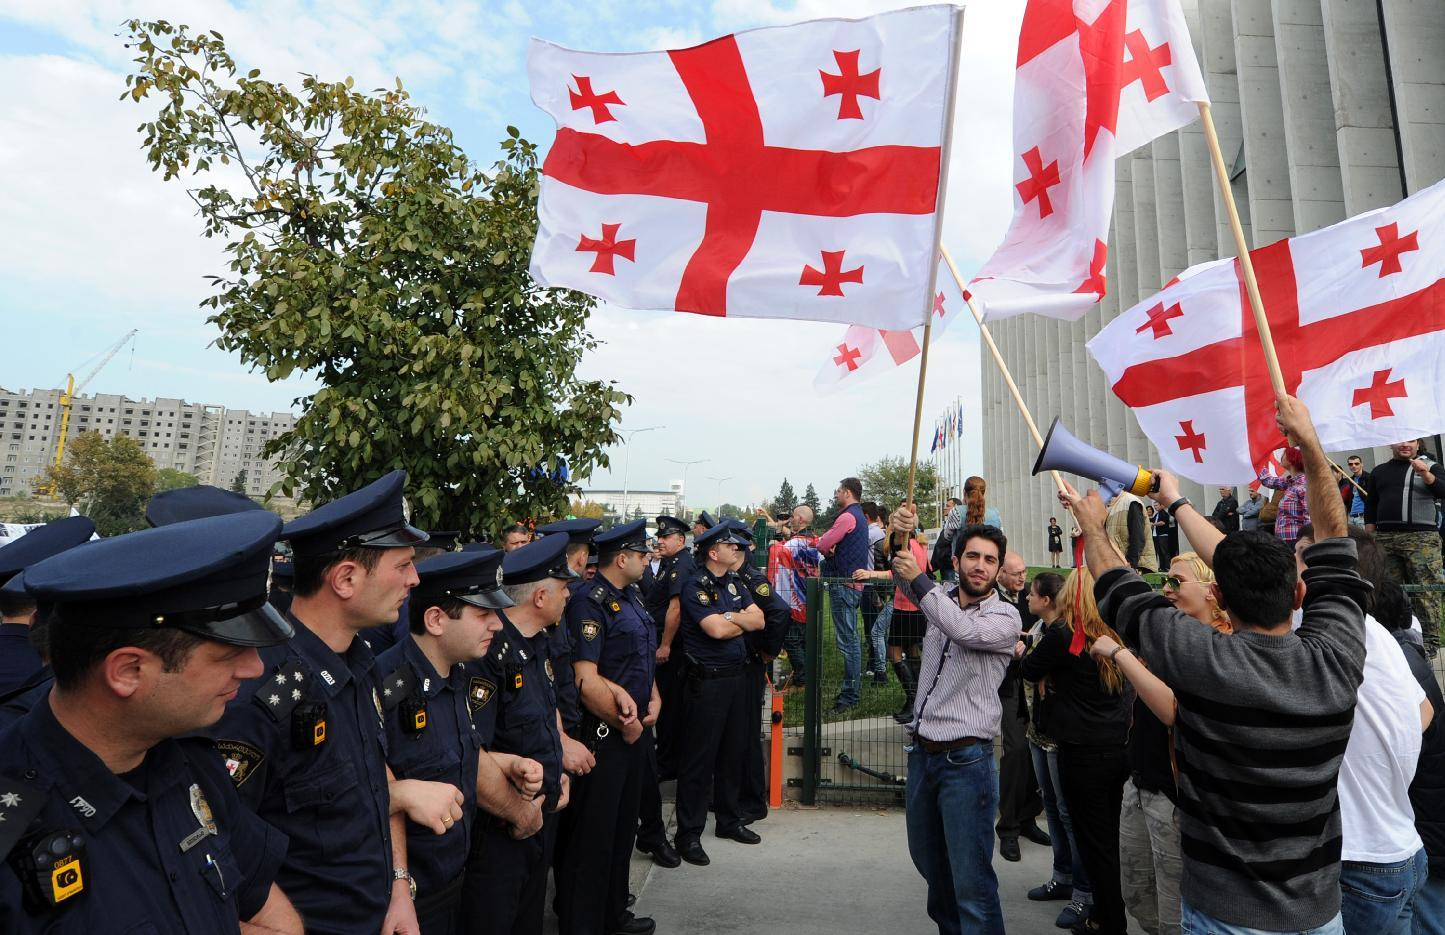 Supporters of Mikhail Saakashvili's United National Movement rally outside the party's headquarters in Tbilisi, Georgia on October 15, 2014